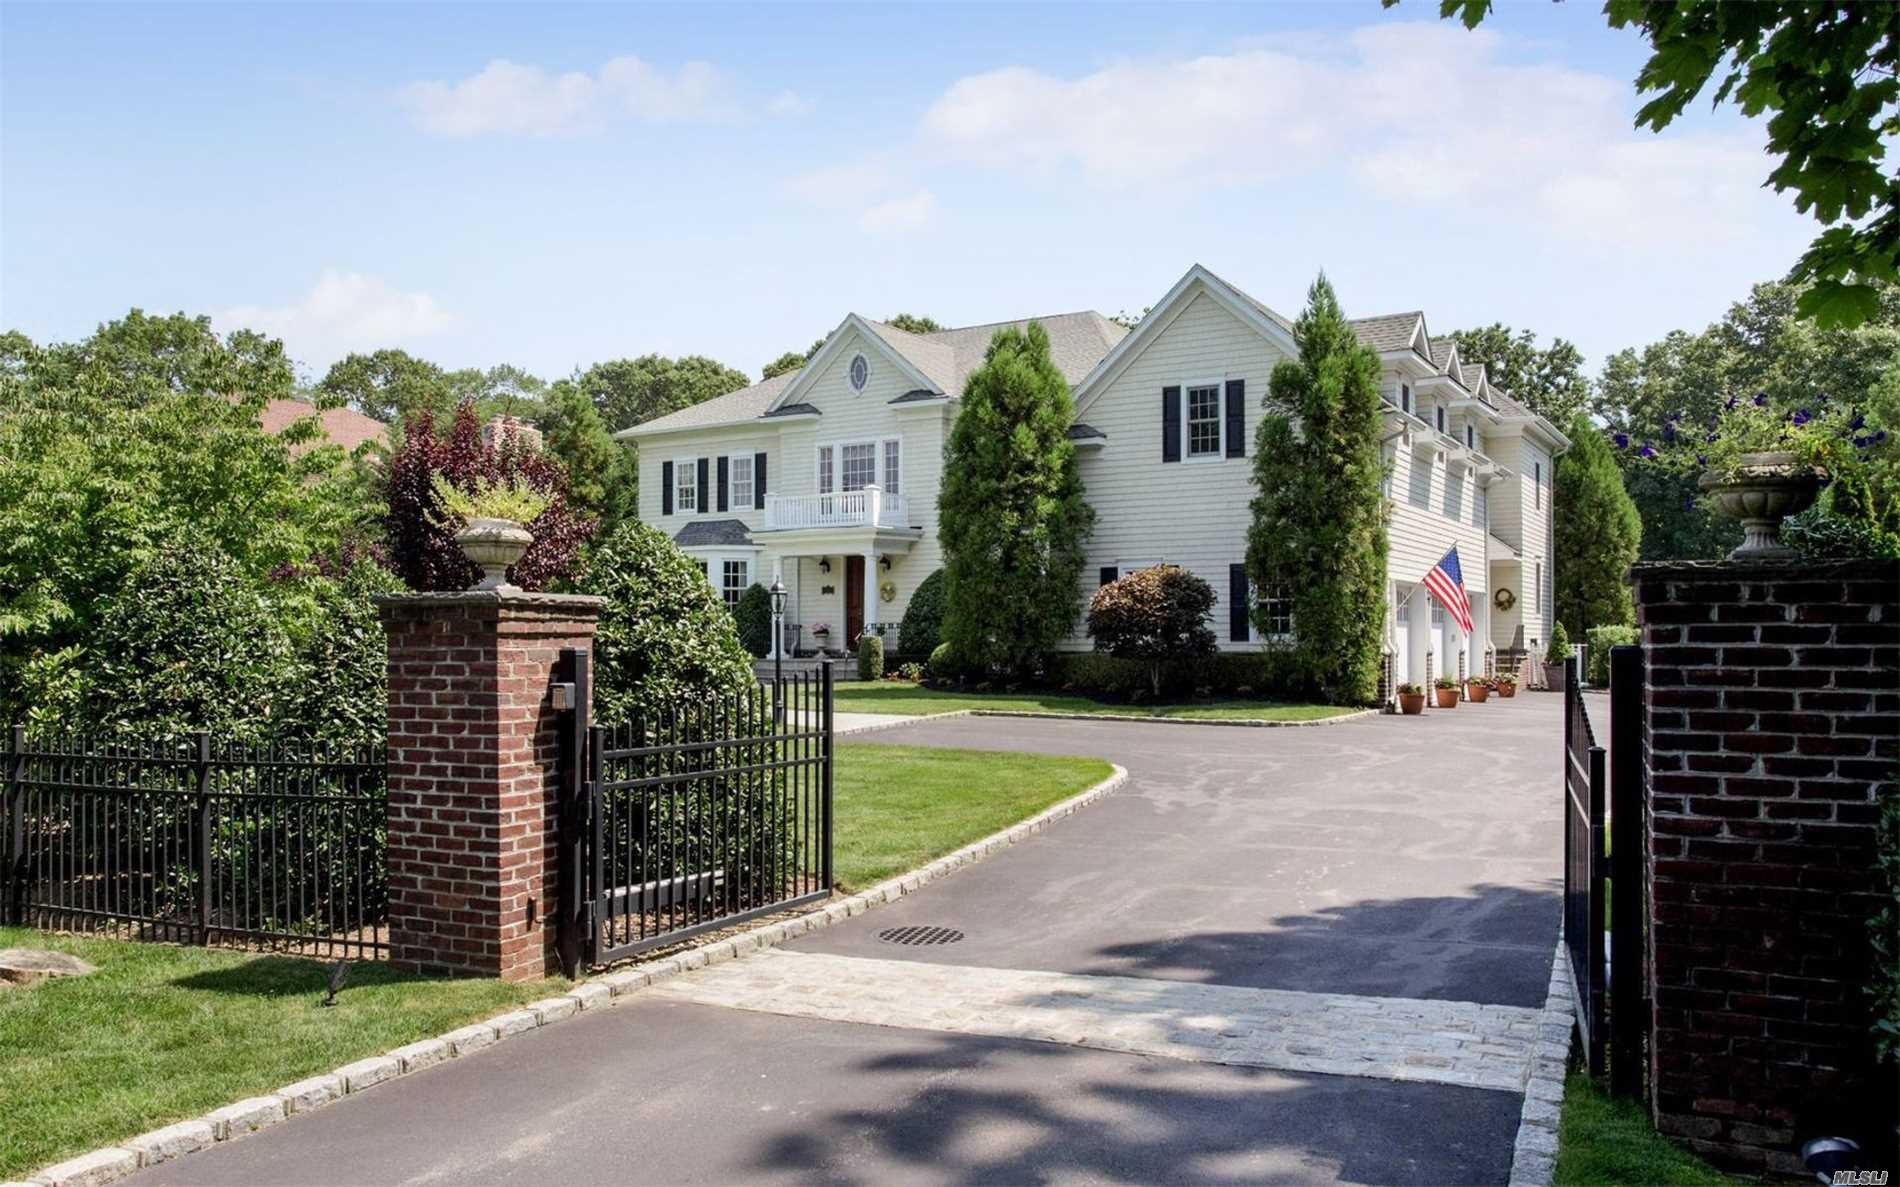 Gracious Ch Colonial, Gated & Privately Set Back In No. Syosset. Built In 2007, 5200Sq', With 9' Ceilings. Lg Crown Moldings, Open Flr Plan, Hw Flrs. Walk-In Closets. Great Center Island Kitchen W/French Doors To Pool. Double Door Entry Master Suite W/Gas Fp. Traditional Flair. 4 Brs + Office/Maid's Rm + 2nd Flr Media Room. 1 Acre Landscaped Setting W/Salt Water Heated Pool. Private & Wonderful!